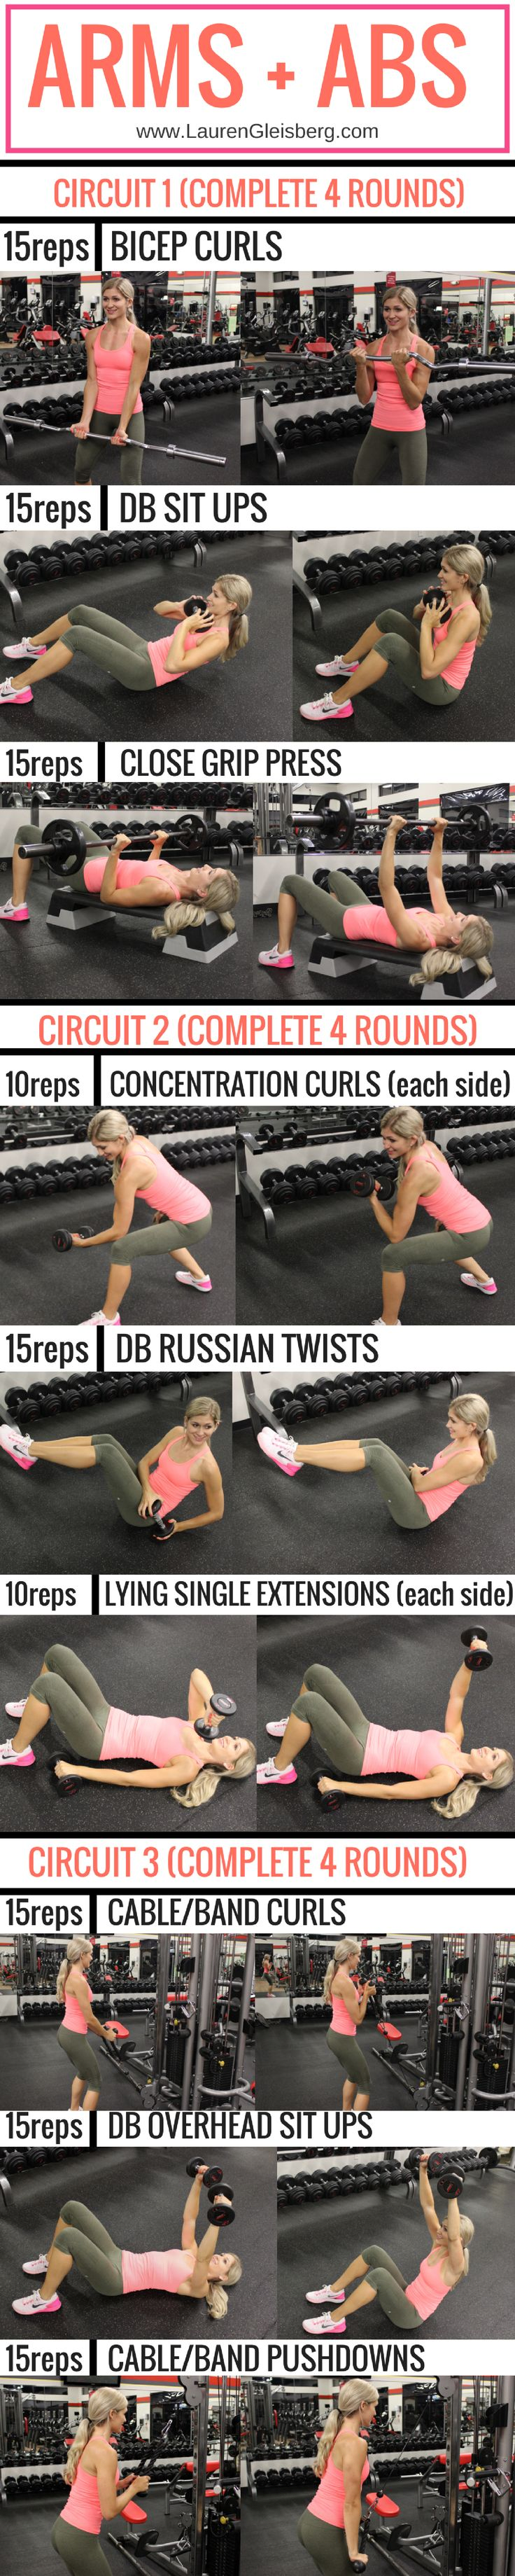 Arms + Abs Circuit